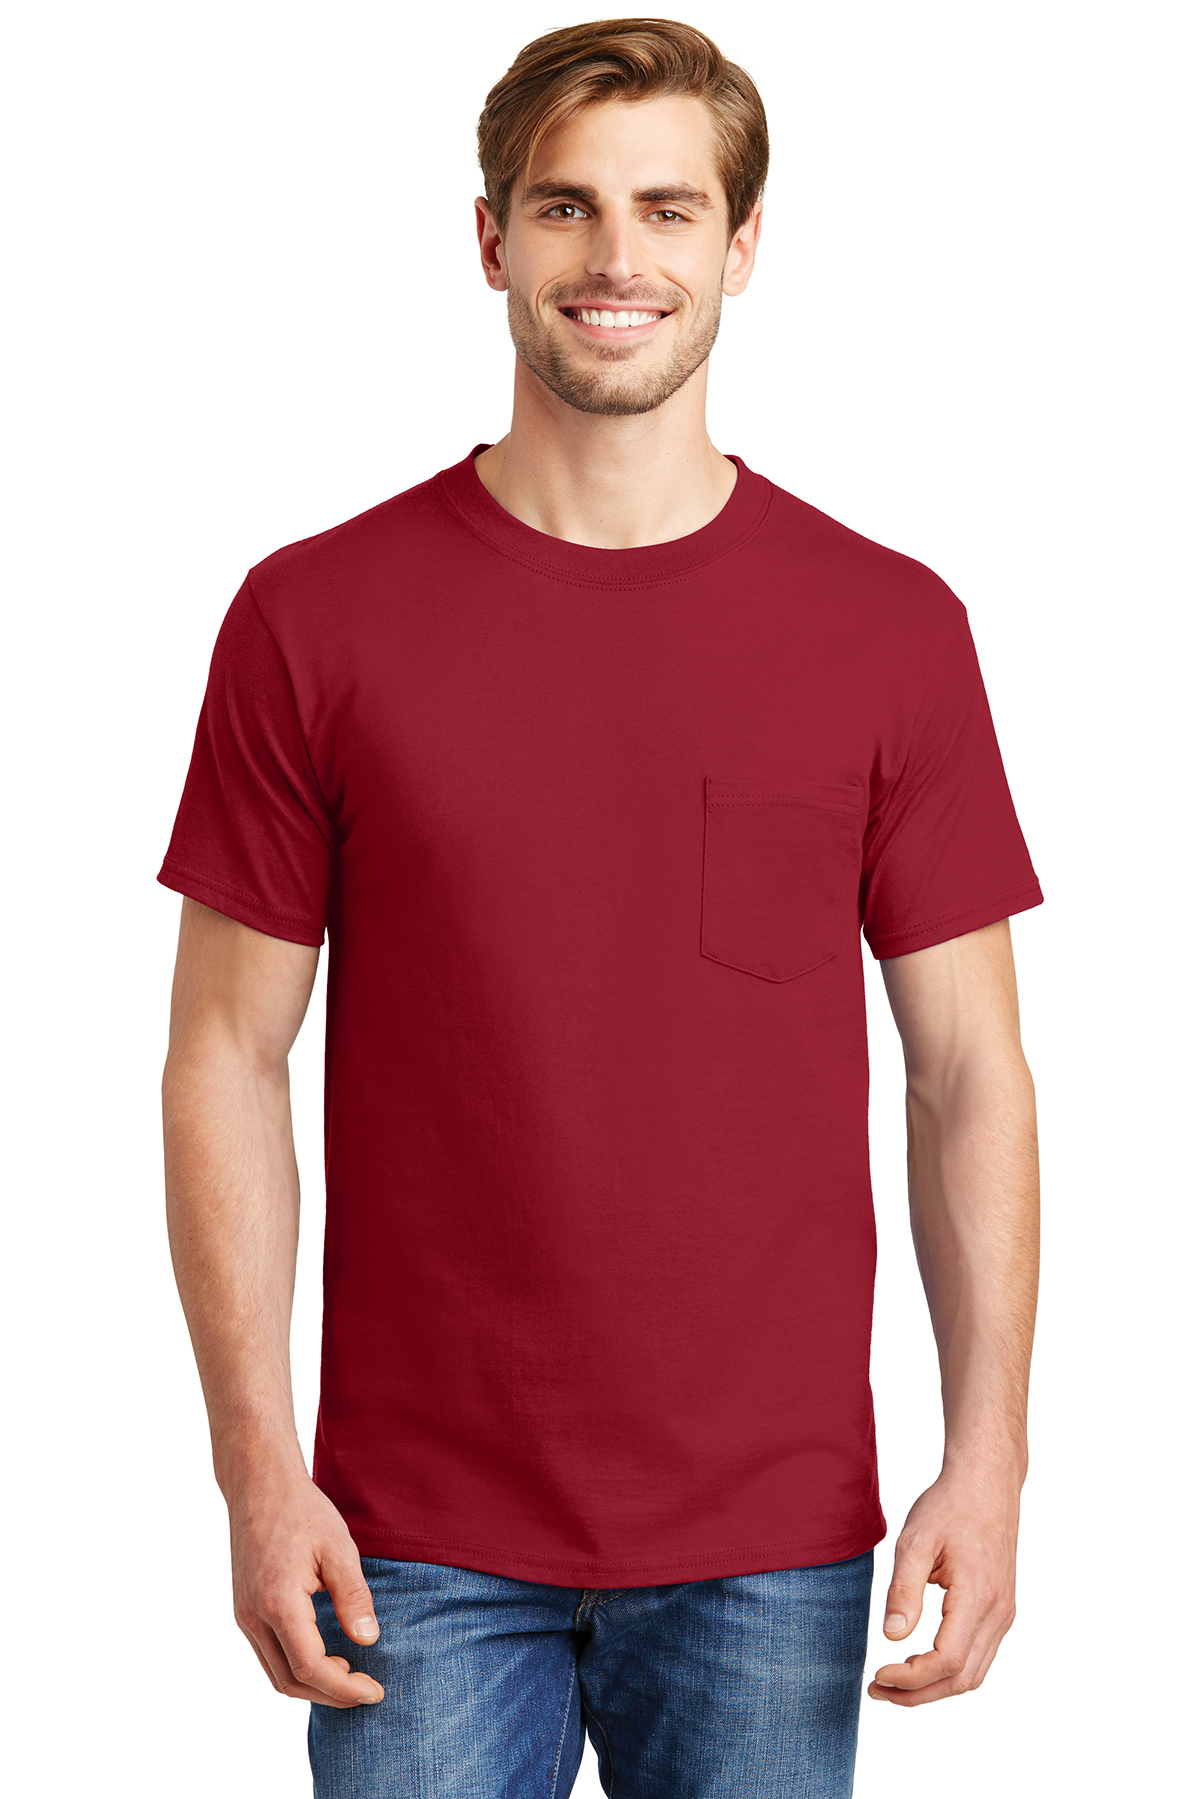 44a8fcdd766f1e Hanes® Beefy-T® - 100% Cotton T-Shirt with Pocket | 6-6.1 100 ...